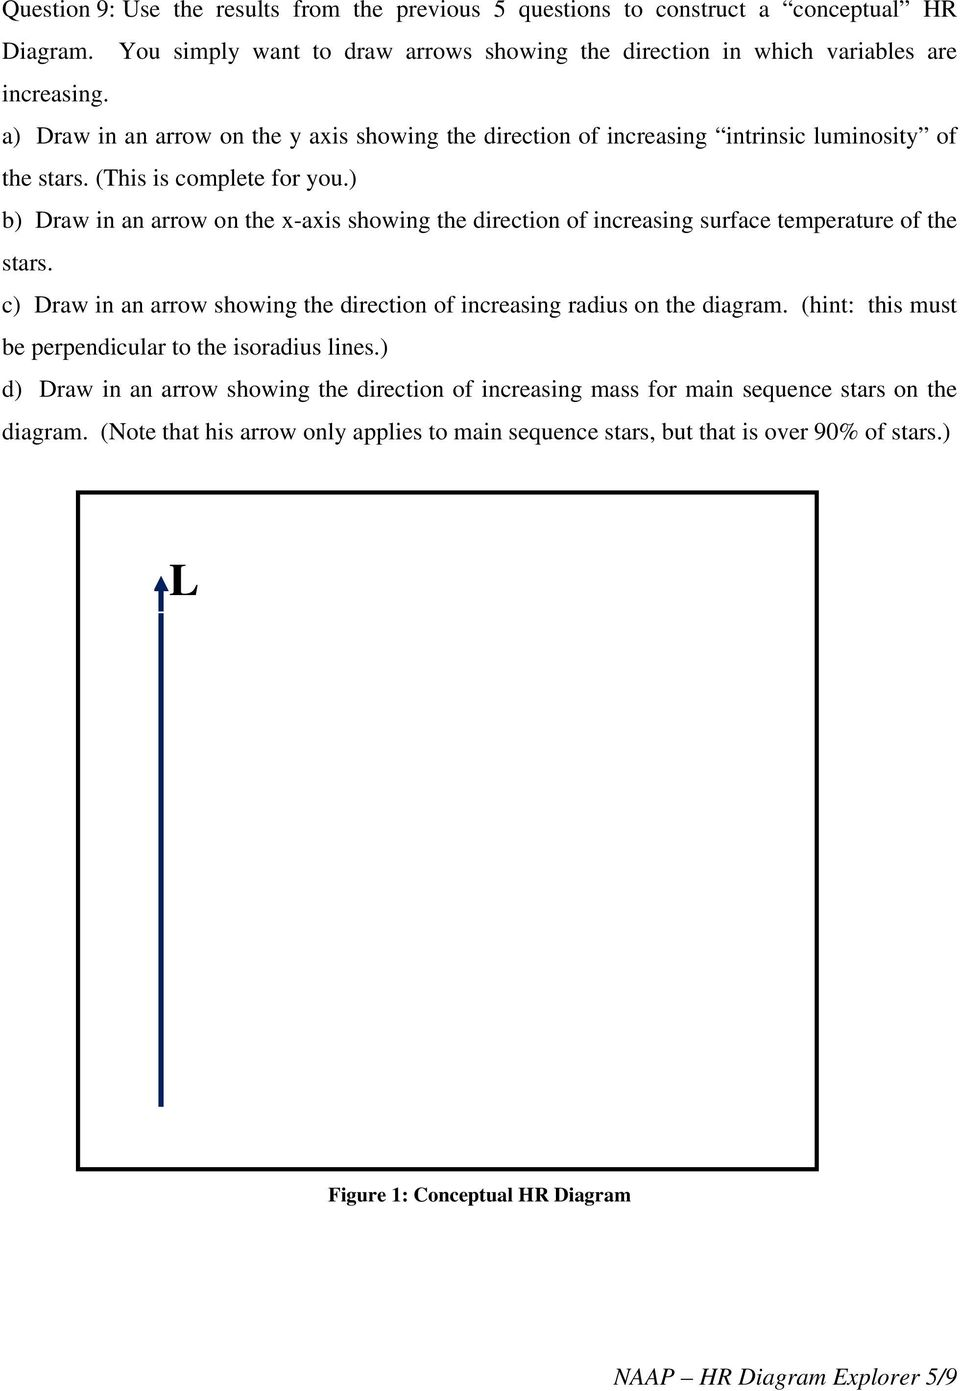 Hr diagram student guide pdf b draw in an arrow on the x axis showing the direction of ccuart Choice Image